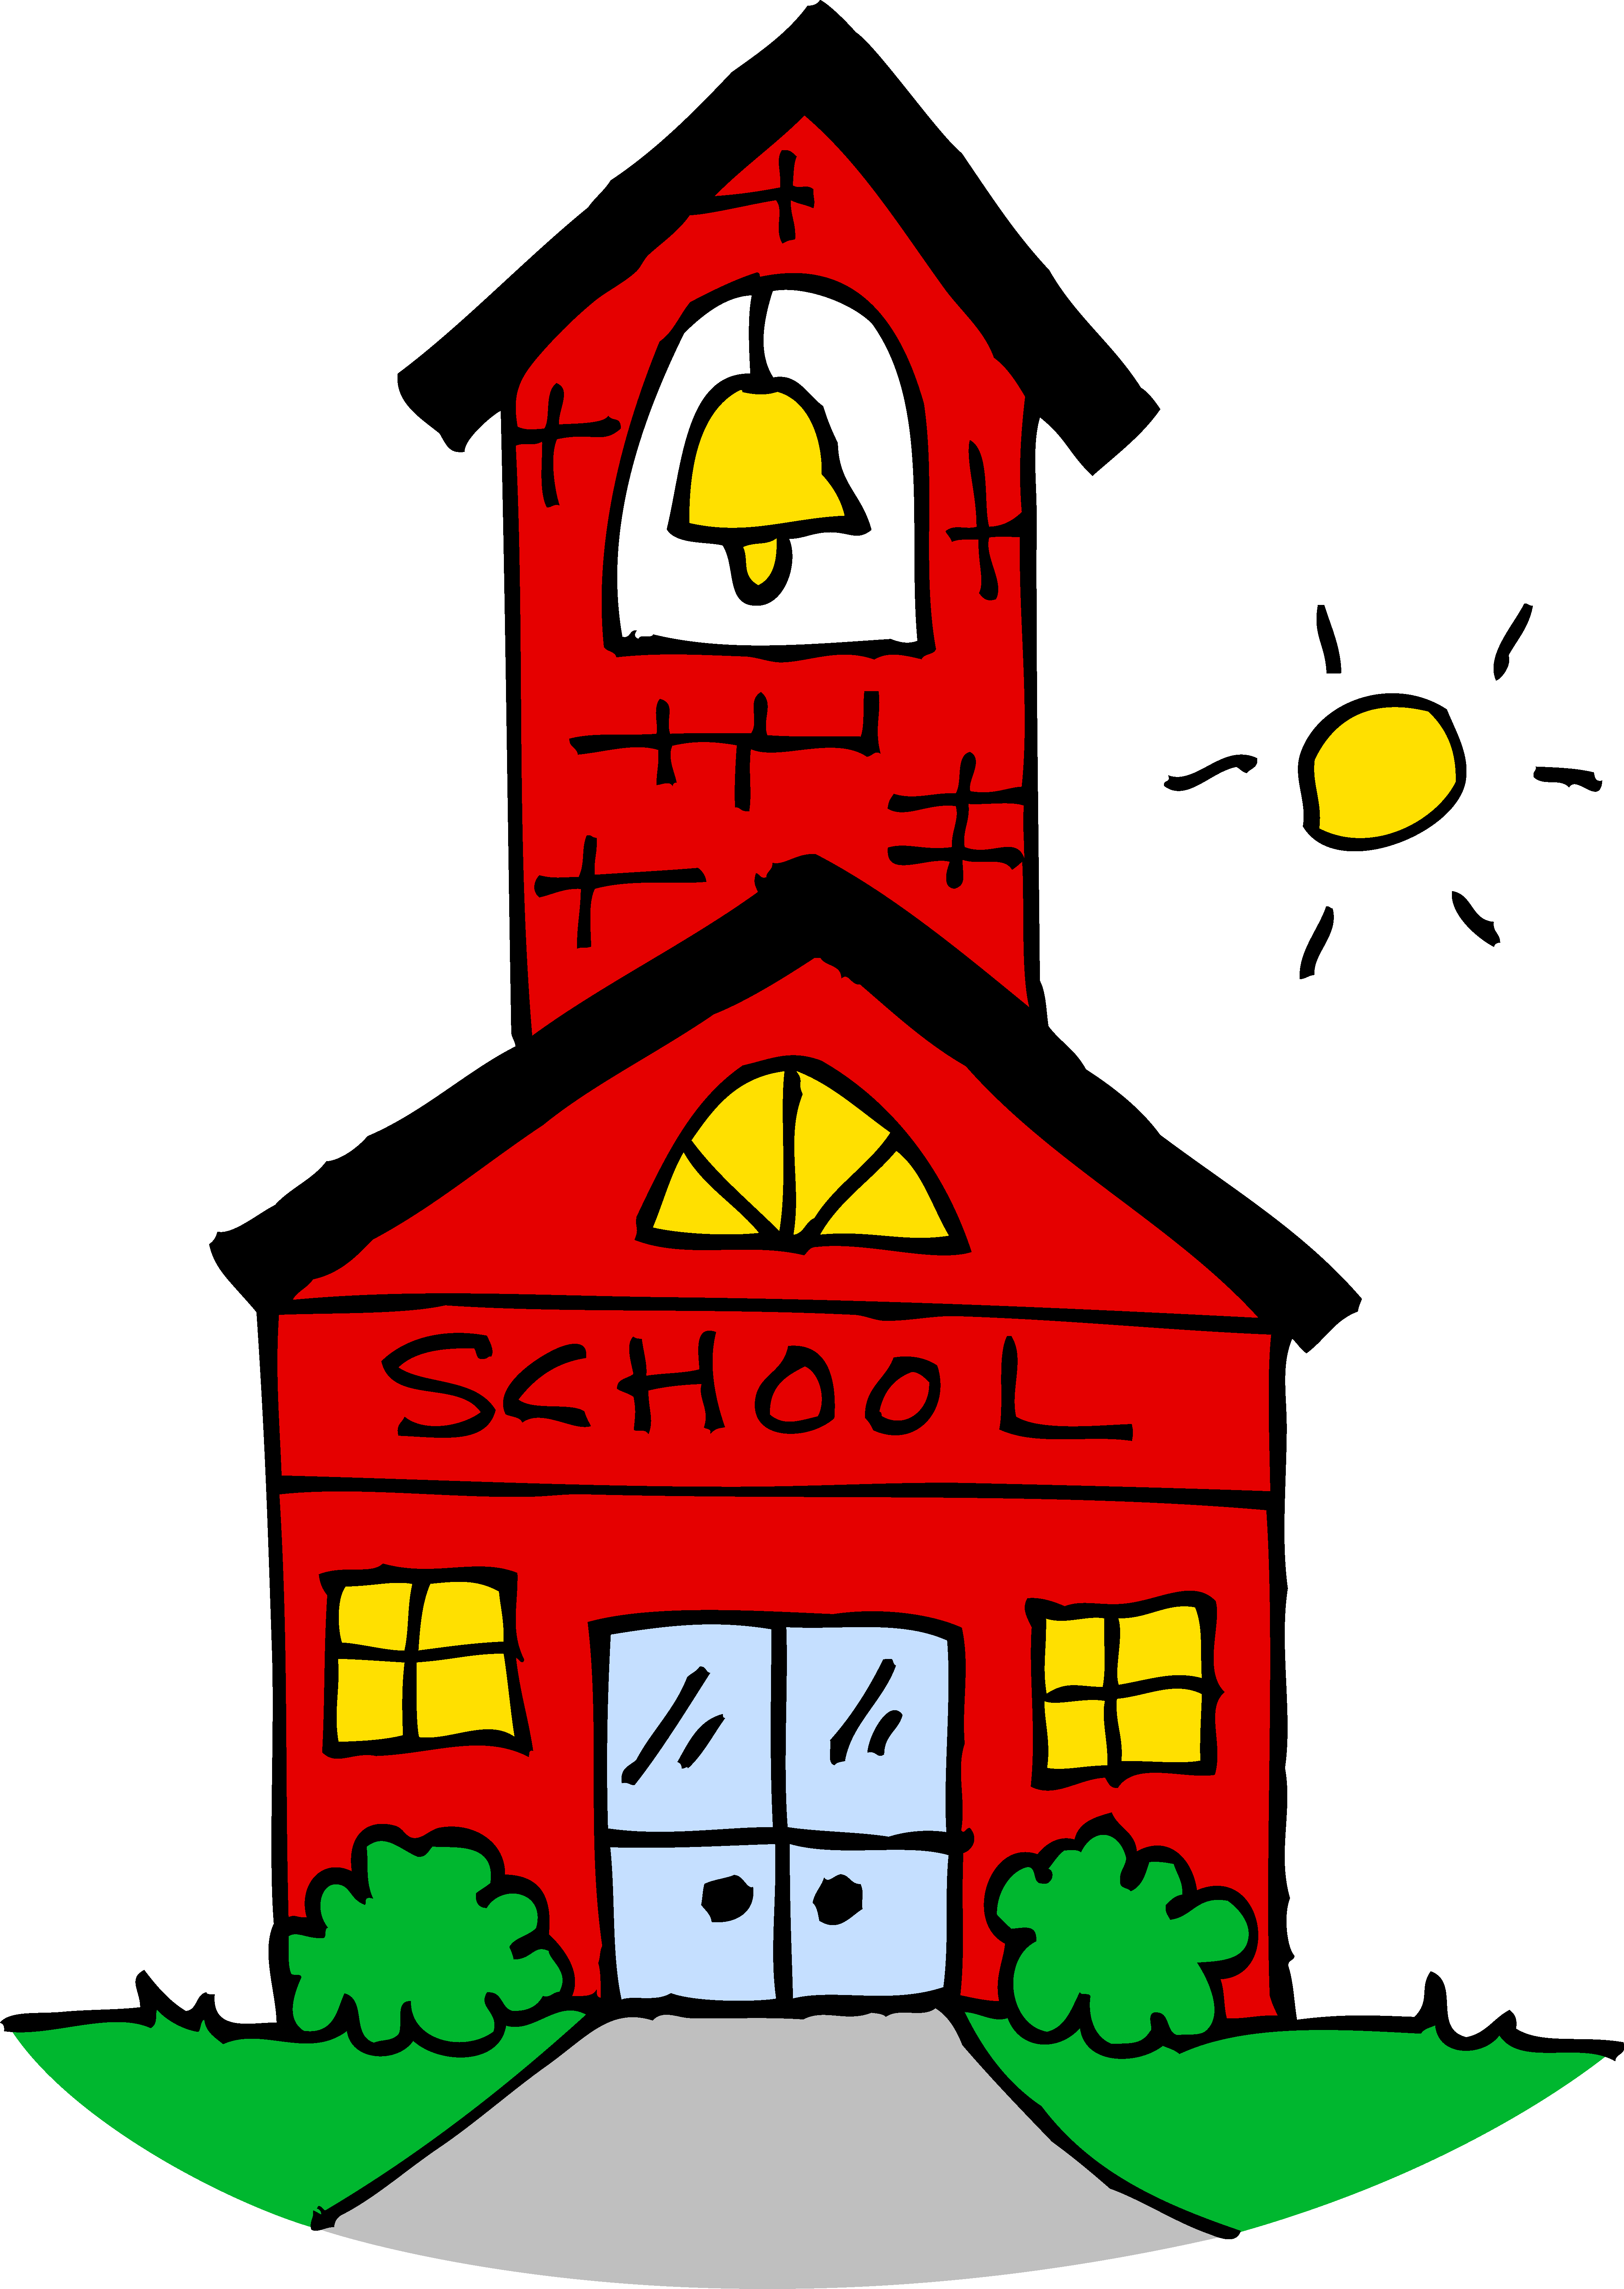 Cute School House Clipart - Free Clip Art